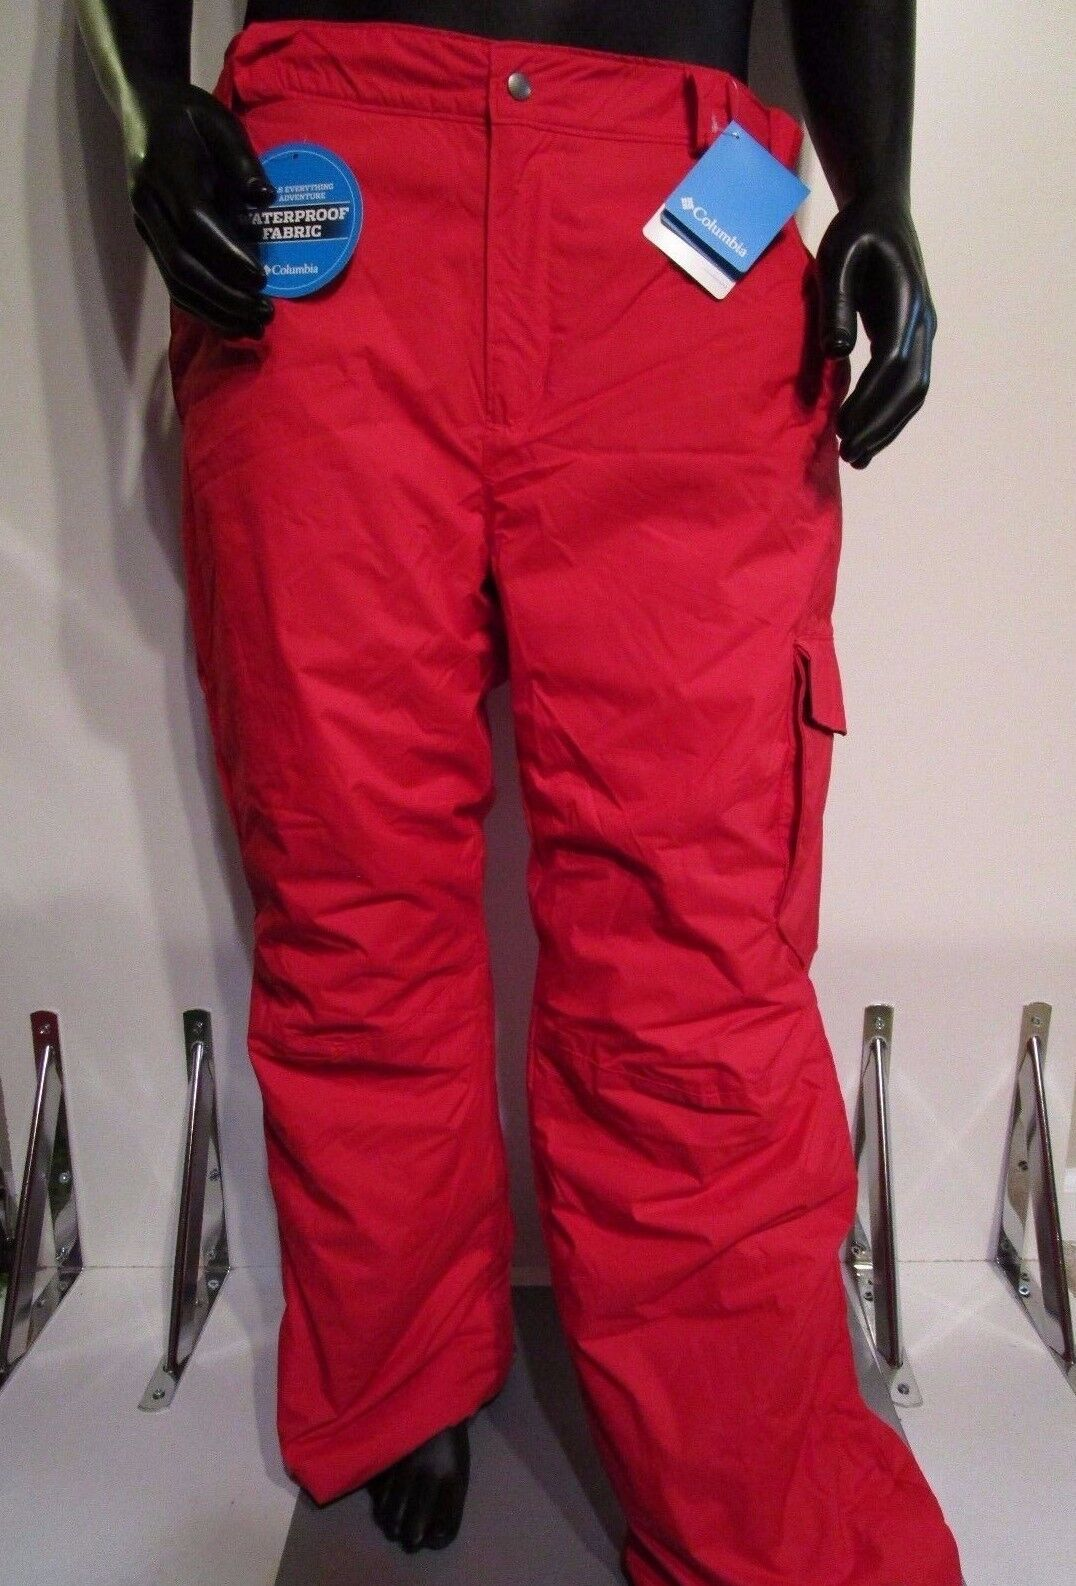 NWT  Herren S-M-L-XL-XXL Columbia Bull Lake Insulated Waterproof Snow Snow Waterproof Ski Pants ROT 64bd76